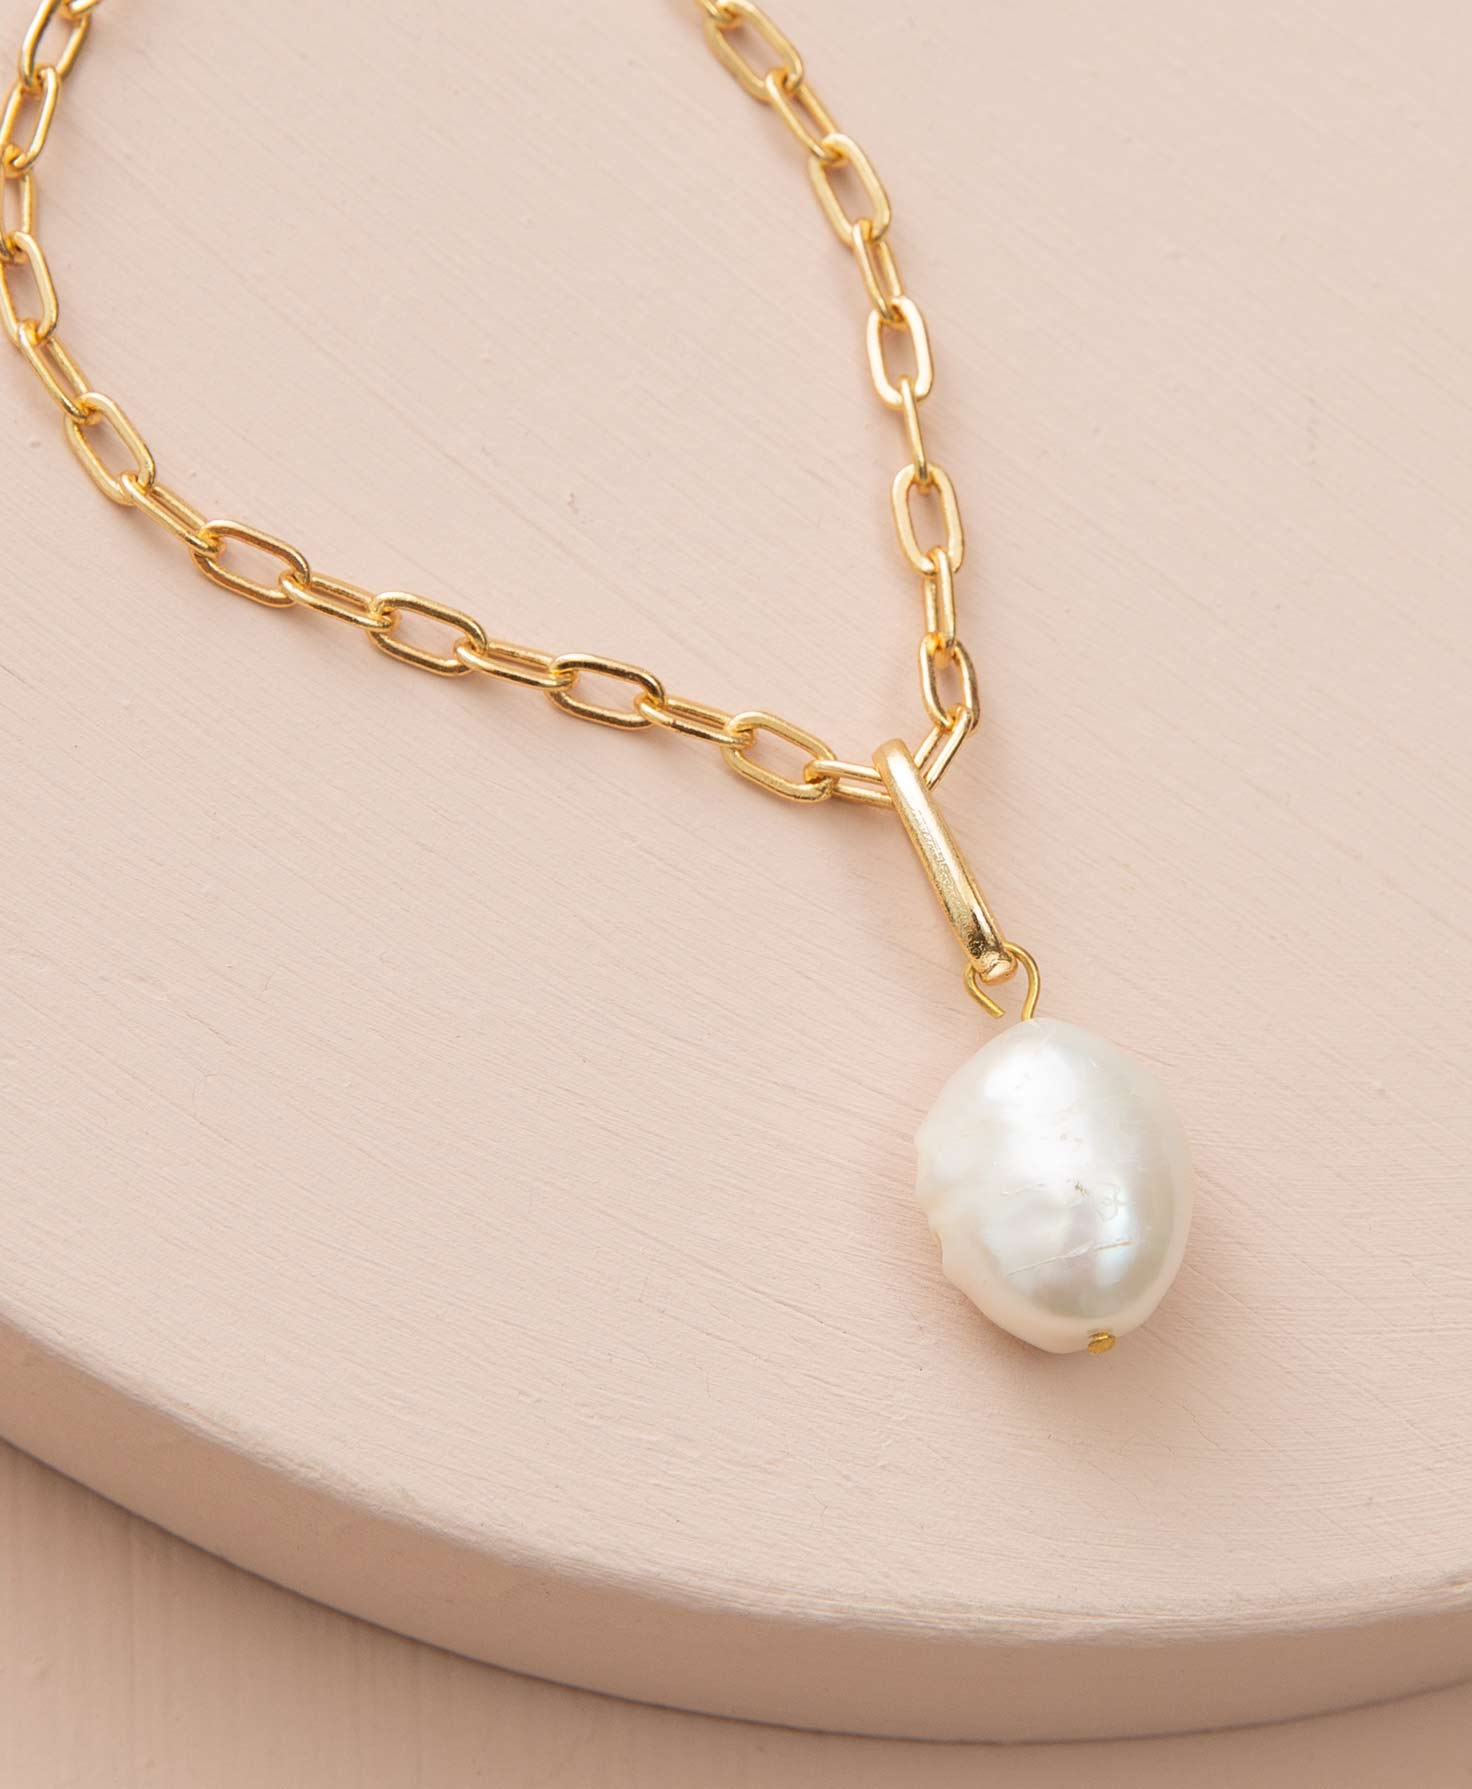 The Float Necklace rests on a cream-colored platform. It features a chain of shiny gold-plated brass links. The links are elongated and have a chain-link look. Attached to the chain is a small, vertical brass bar with a large round pearl dangling from it.